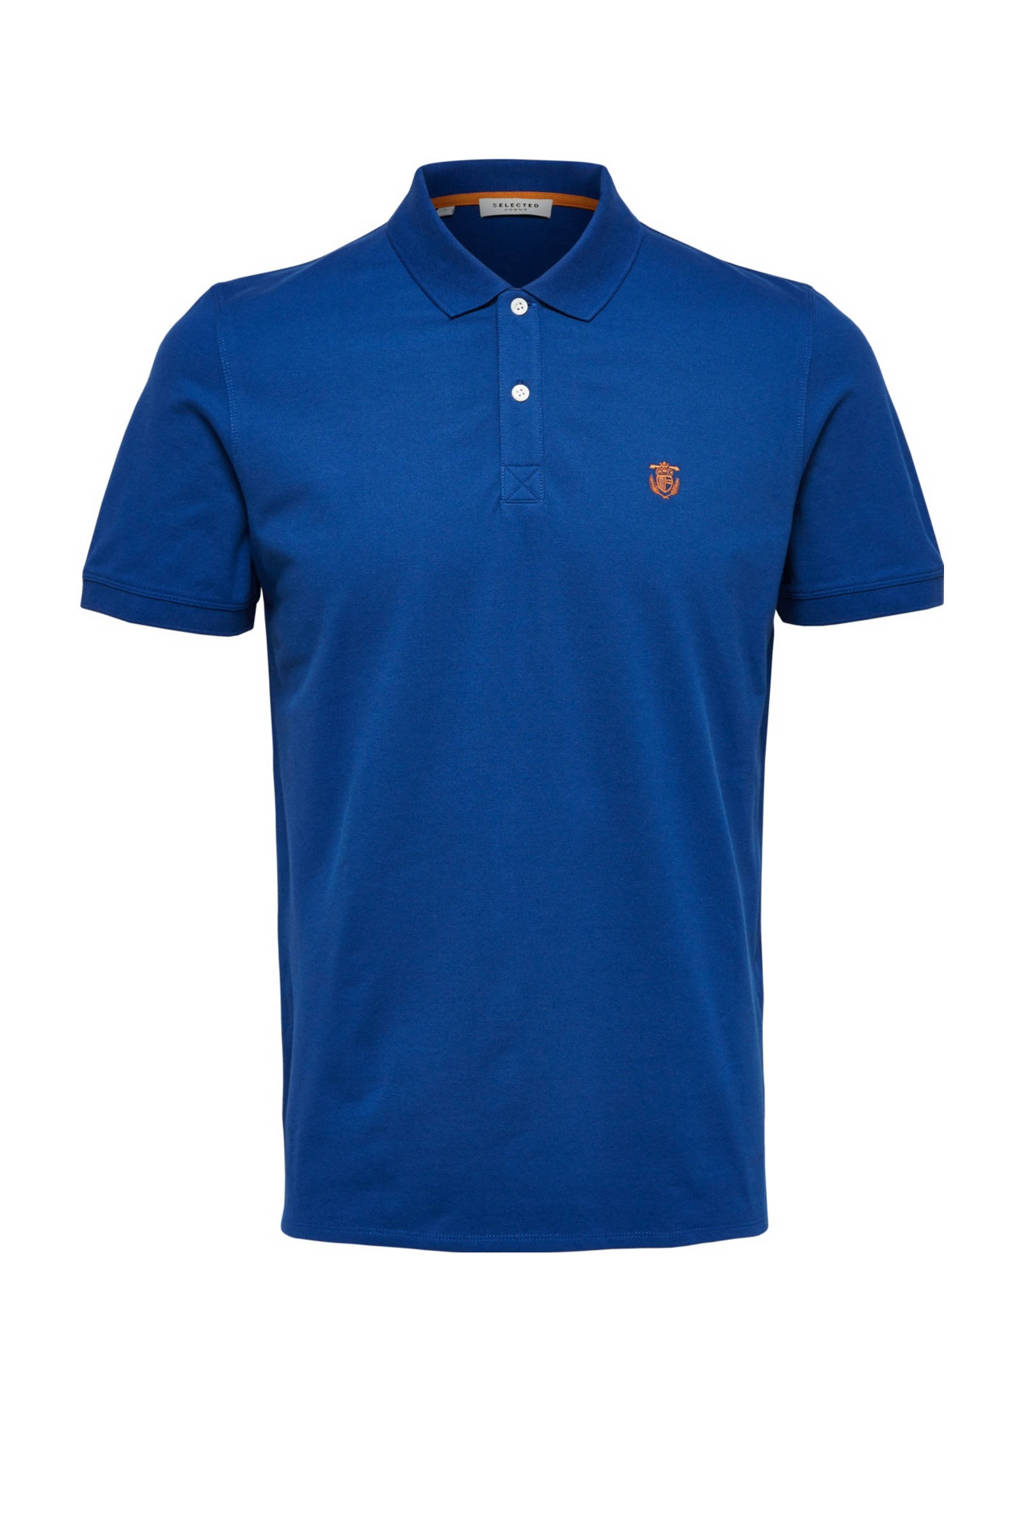 SELECTED HOMME polo korte mouw, Blauw